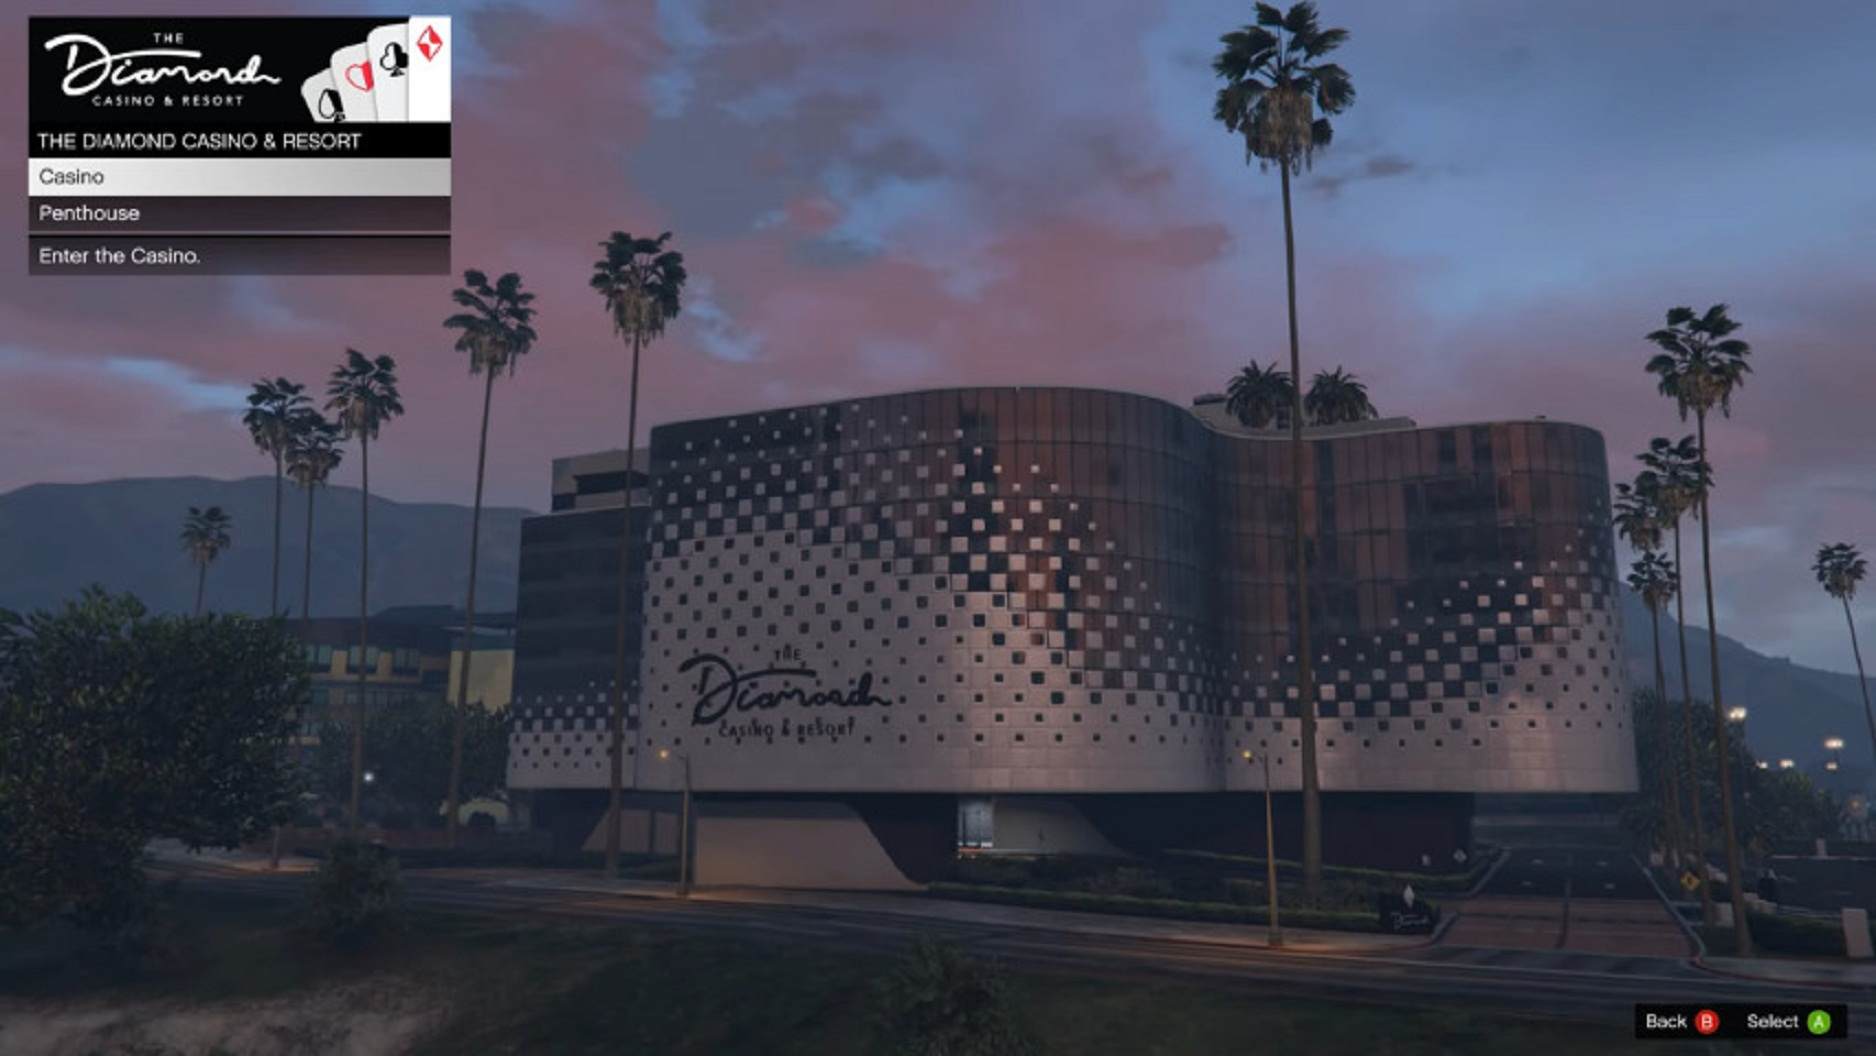 GTA 5 Online Plans To Add A Very Sophisticated Diamond Casino Heist In Los Santos, According To Rockstar's Recent Tweet